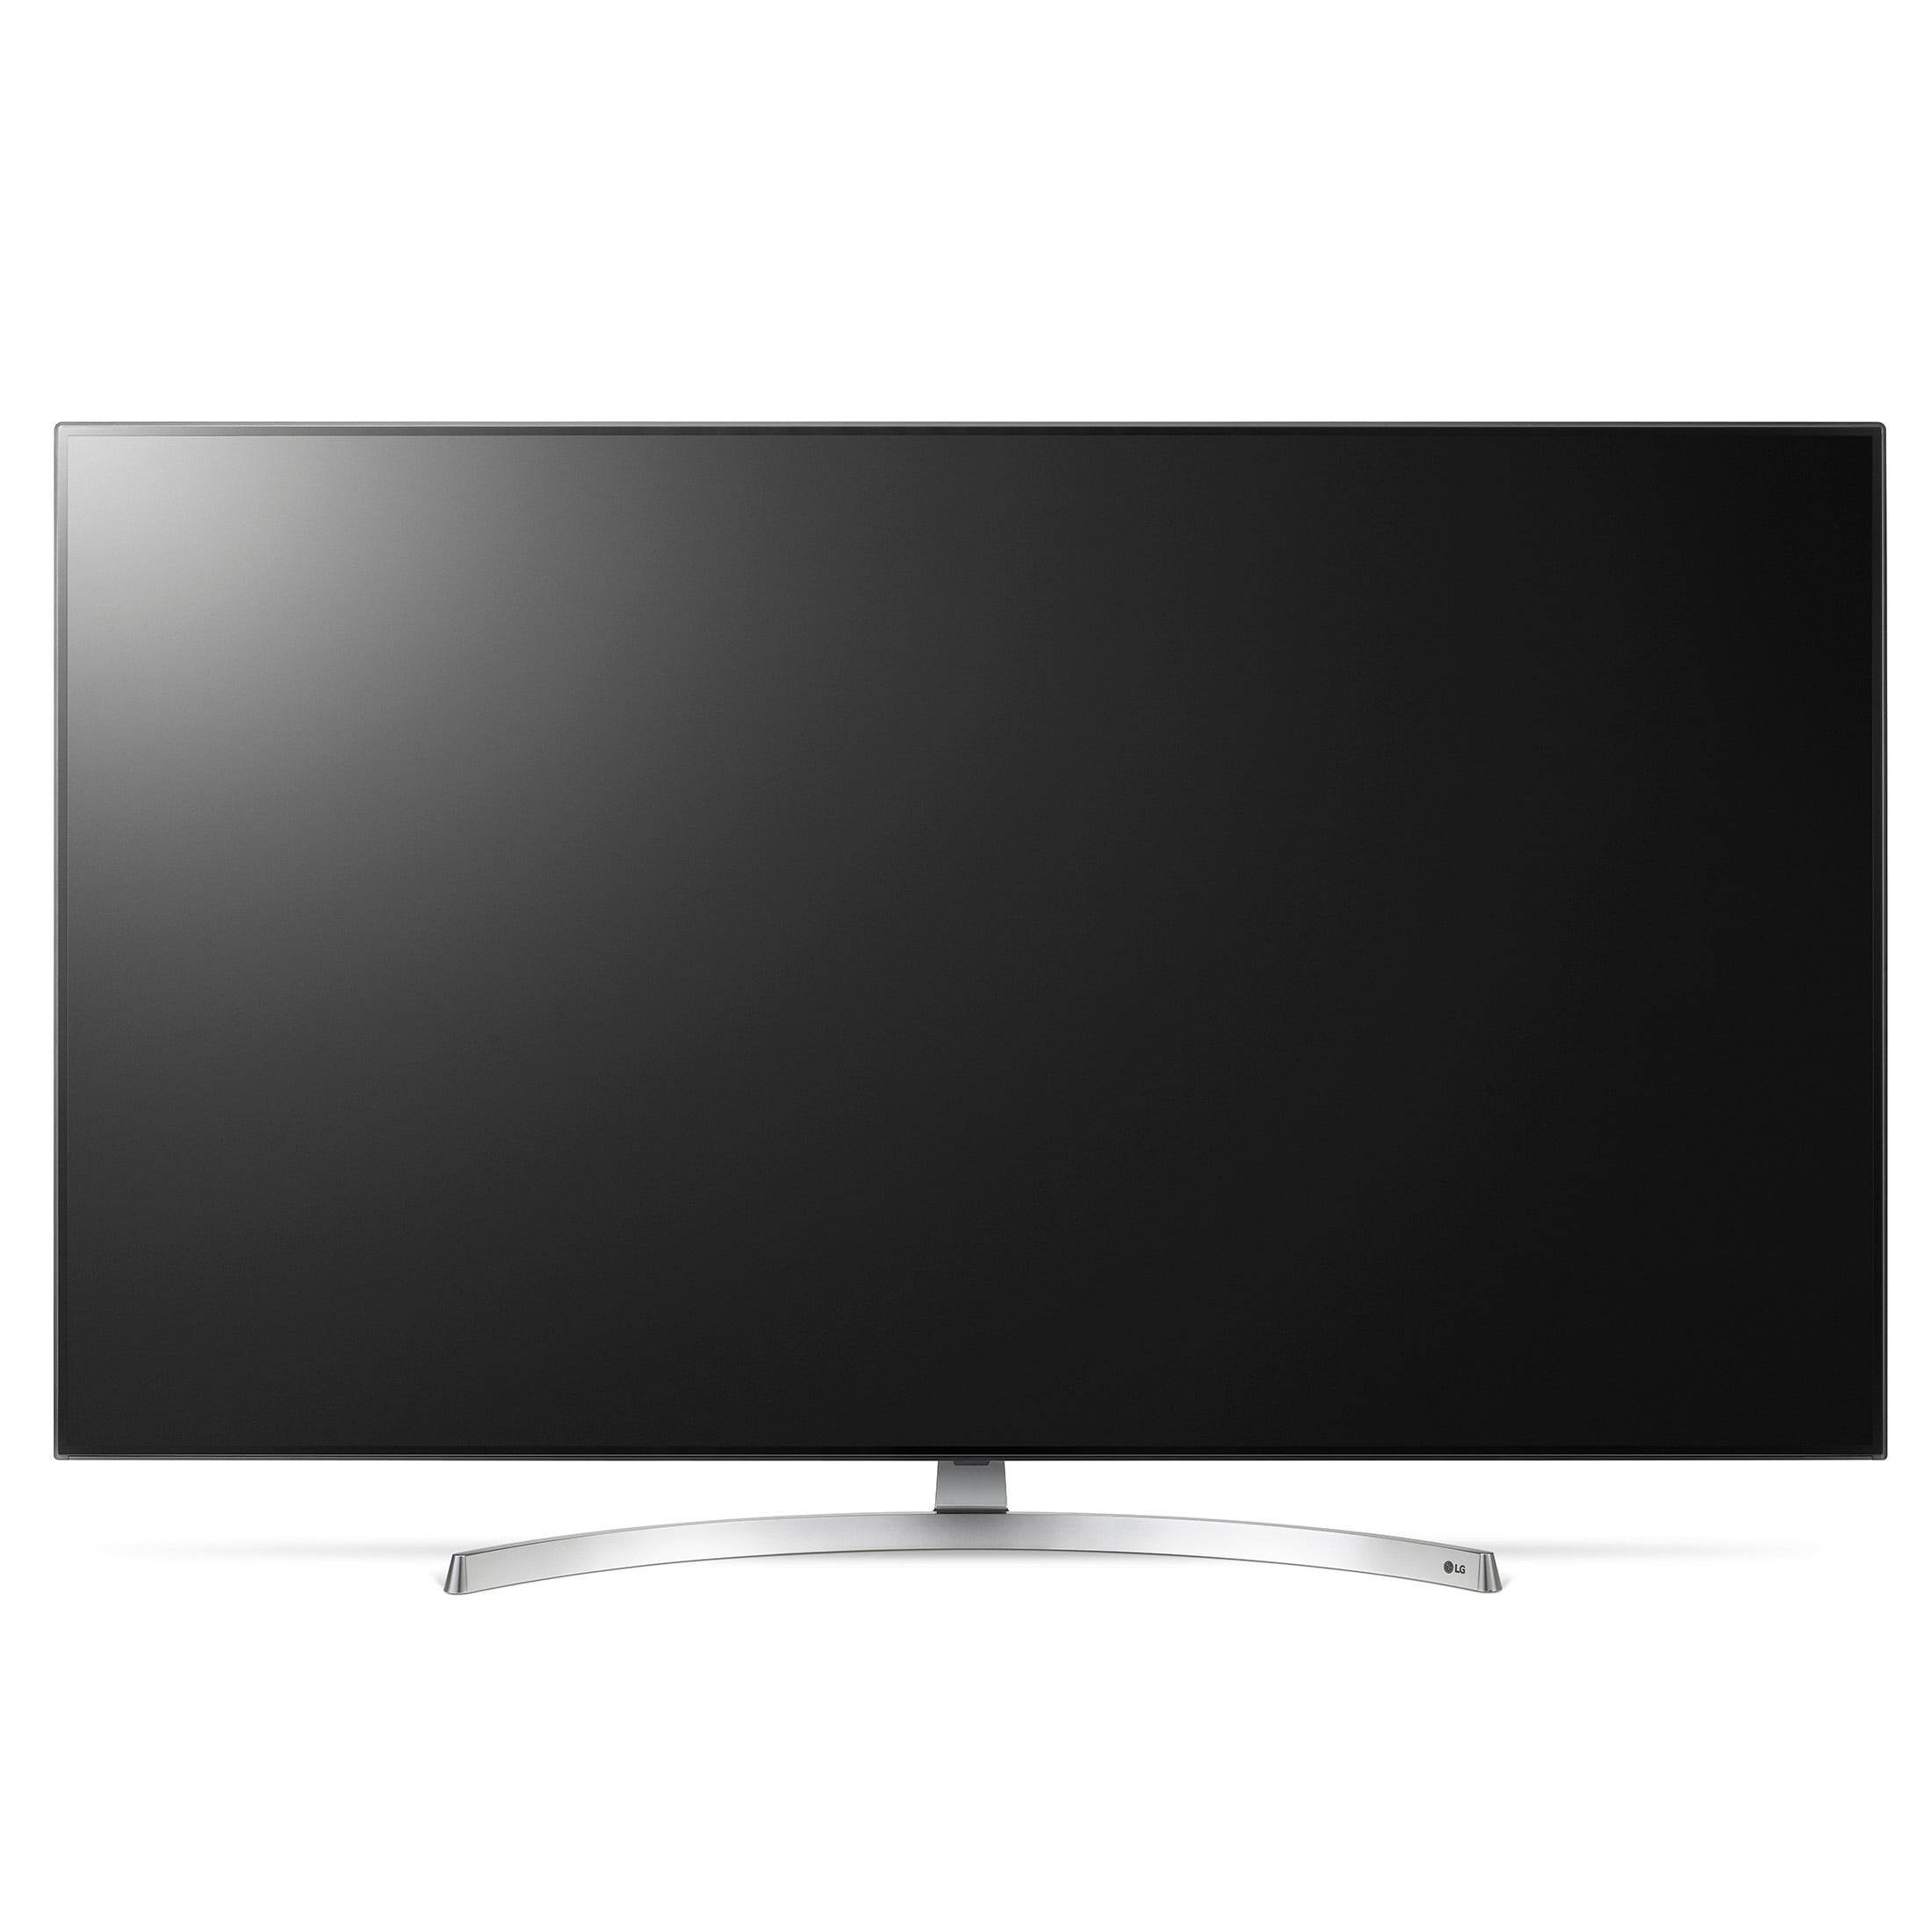 "55"""" Class SUPER UHD 4K HDR  w/ Nano Cell? Display - LG 55SK9000PUA"